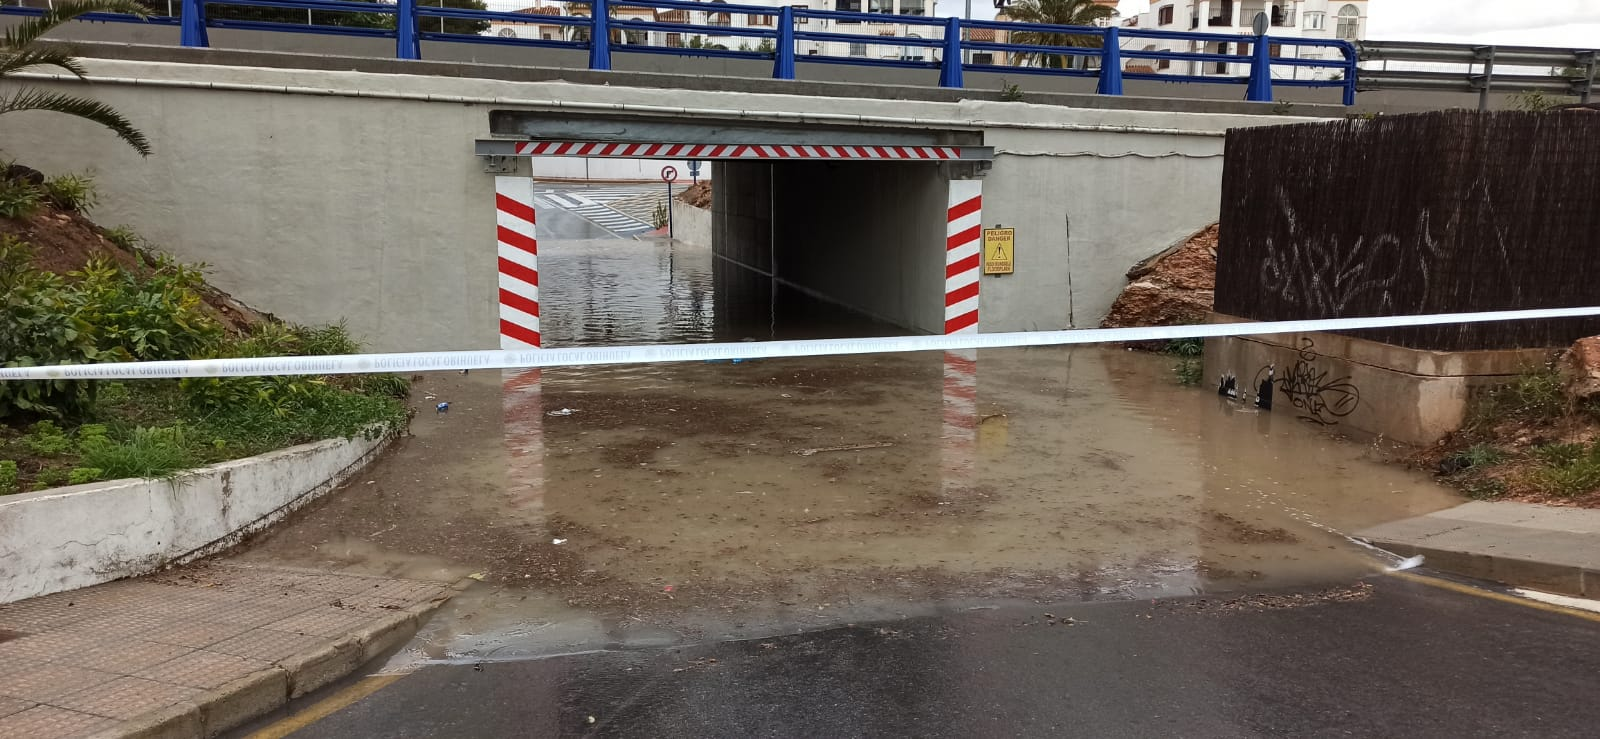 PSOE blames flooding on lack of government investment in Orihuela